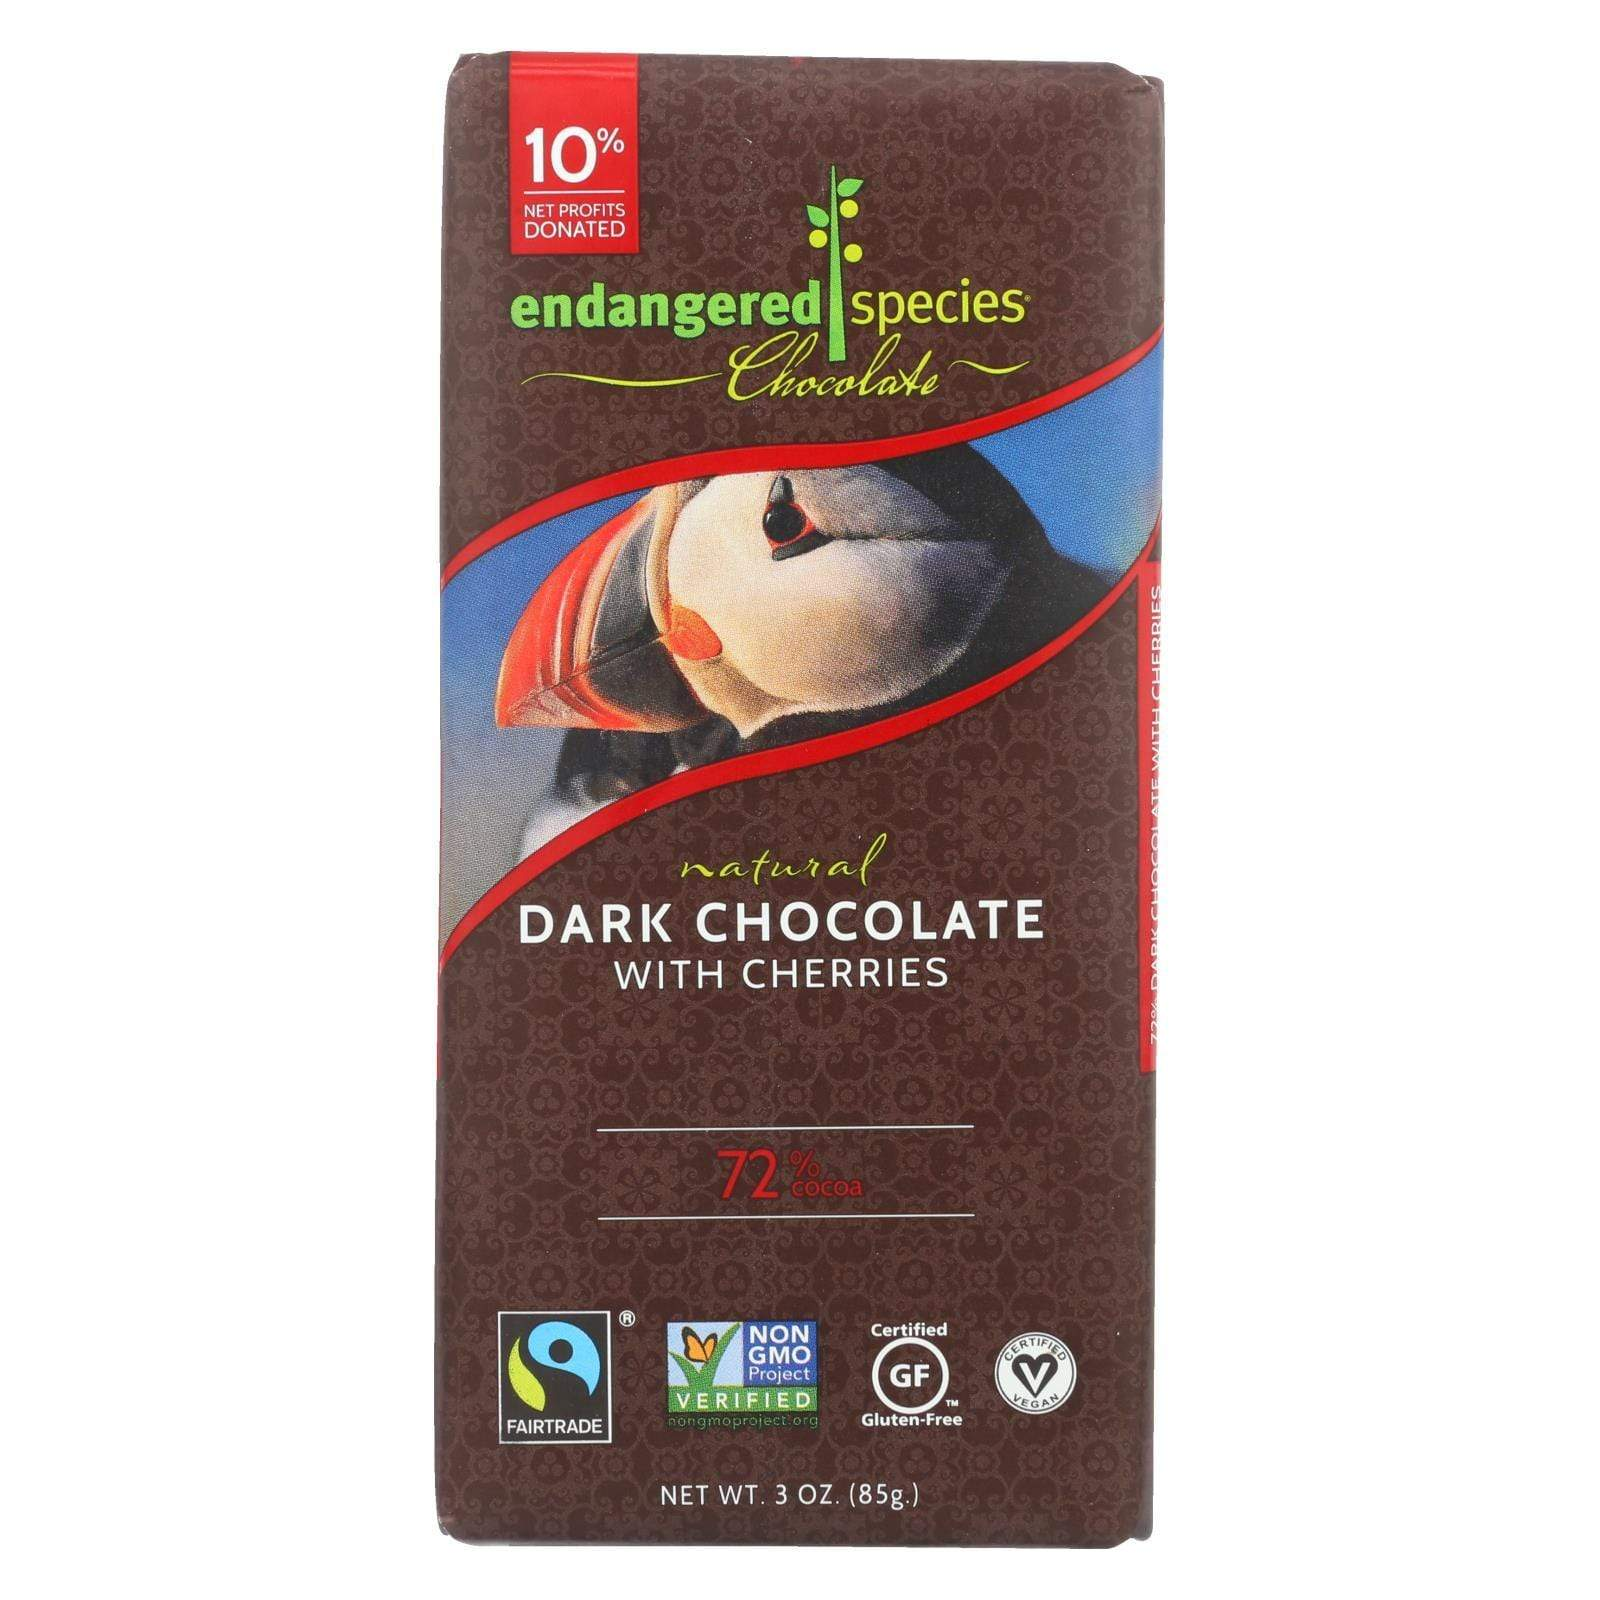 Endangered Species Chocolate Chocolate Endangered Species Natural Chocolate Bars - Dark Chocolate - 72 Percent Cocoa - Cherries - 3 Oz Bars - Case Of 12